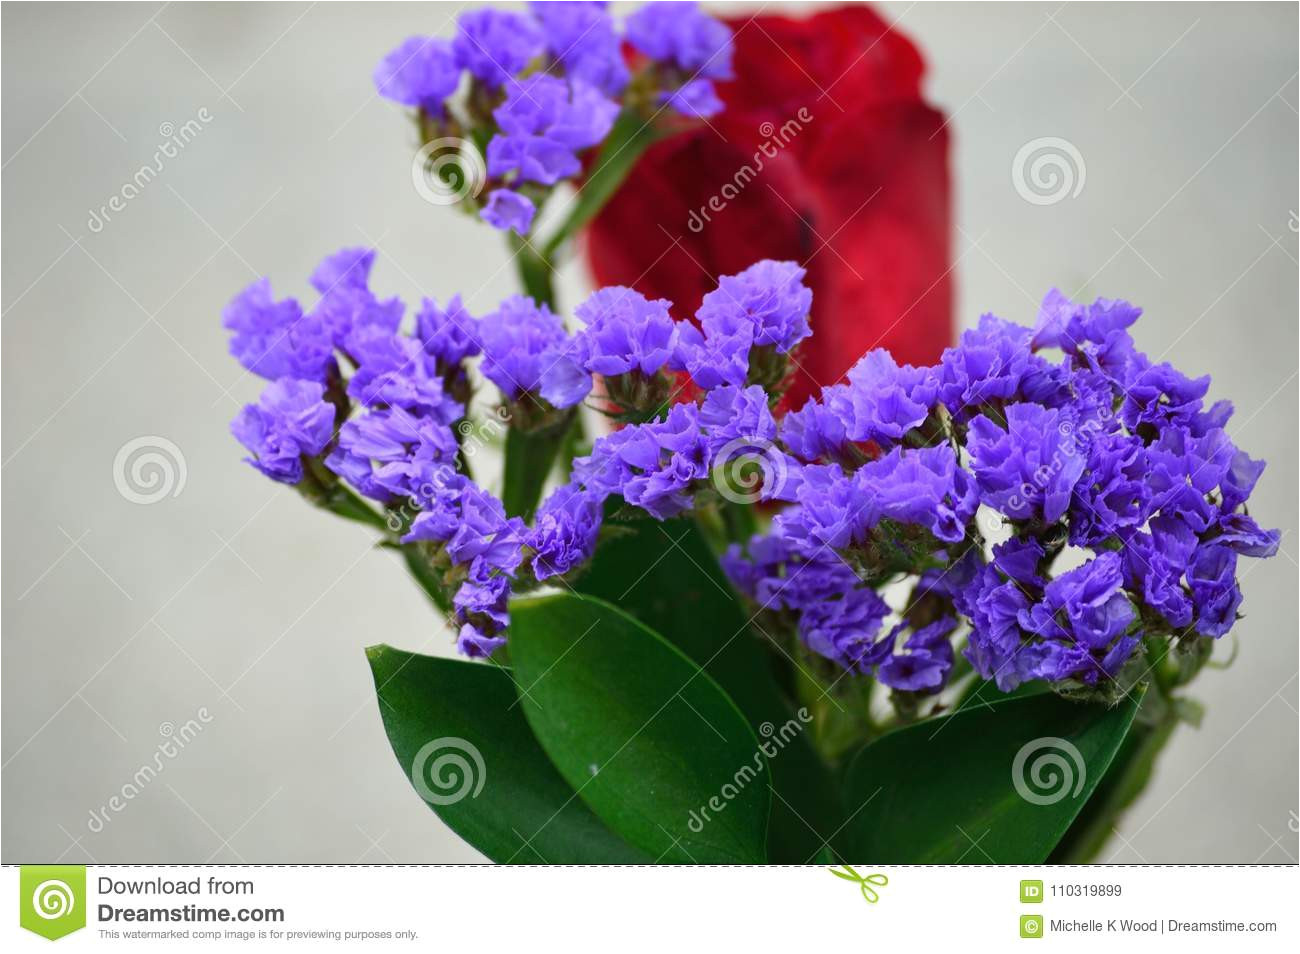 statice limonium sinuatum genus limonium is commonly used as filler in floral arrangements and bouquets it has distinctive spiky flowers and simple or